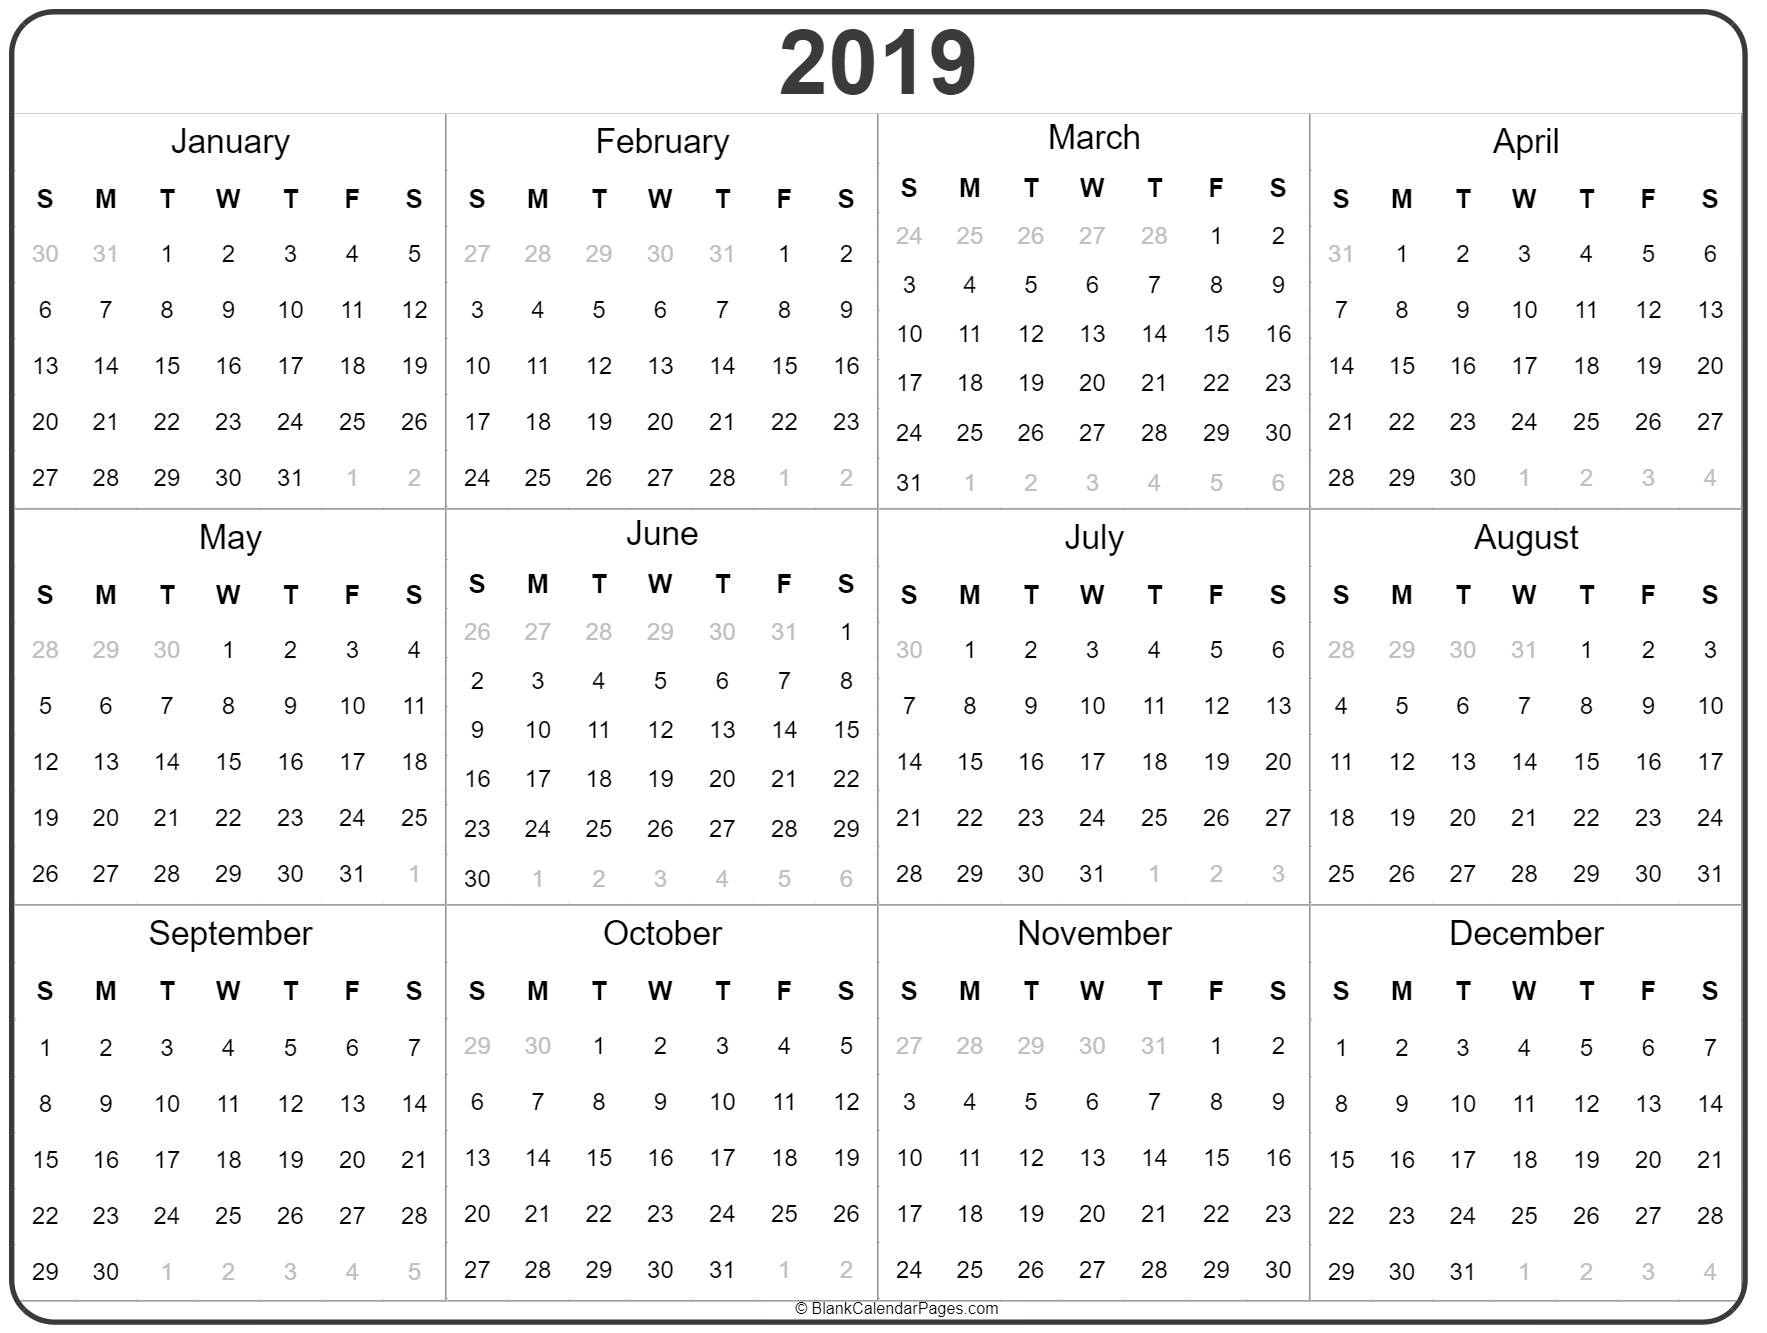 2019 Year Calendar | Yearly Printable Calendars For The Whole Year